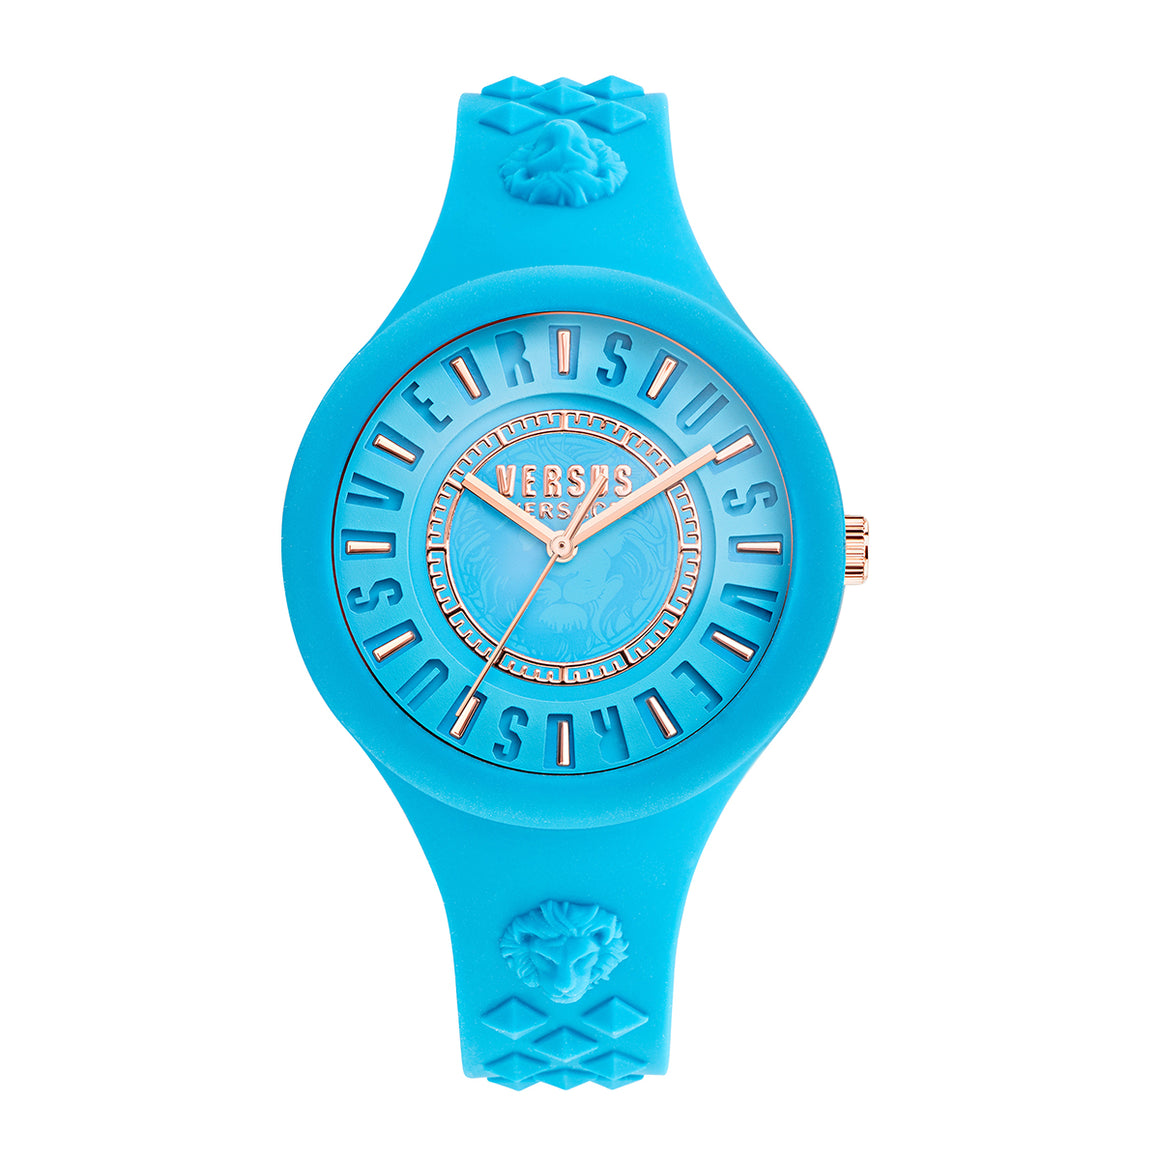 39mm Fire Island Lumiere Turquoise Dial Turquoise Silicone Strap